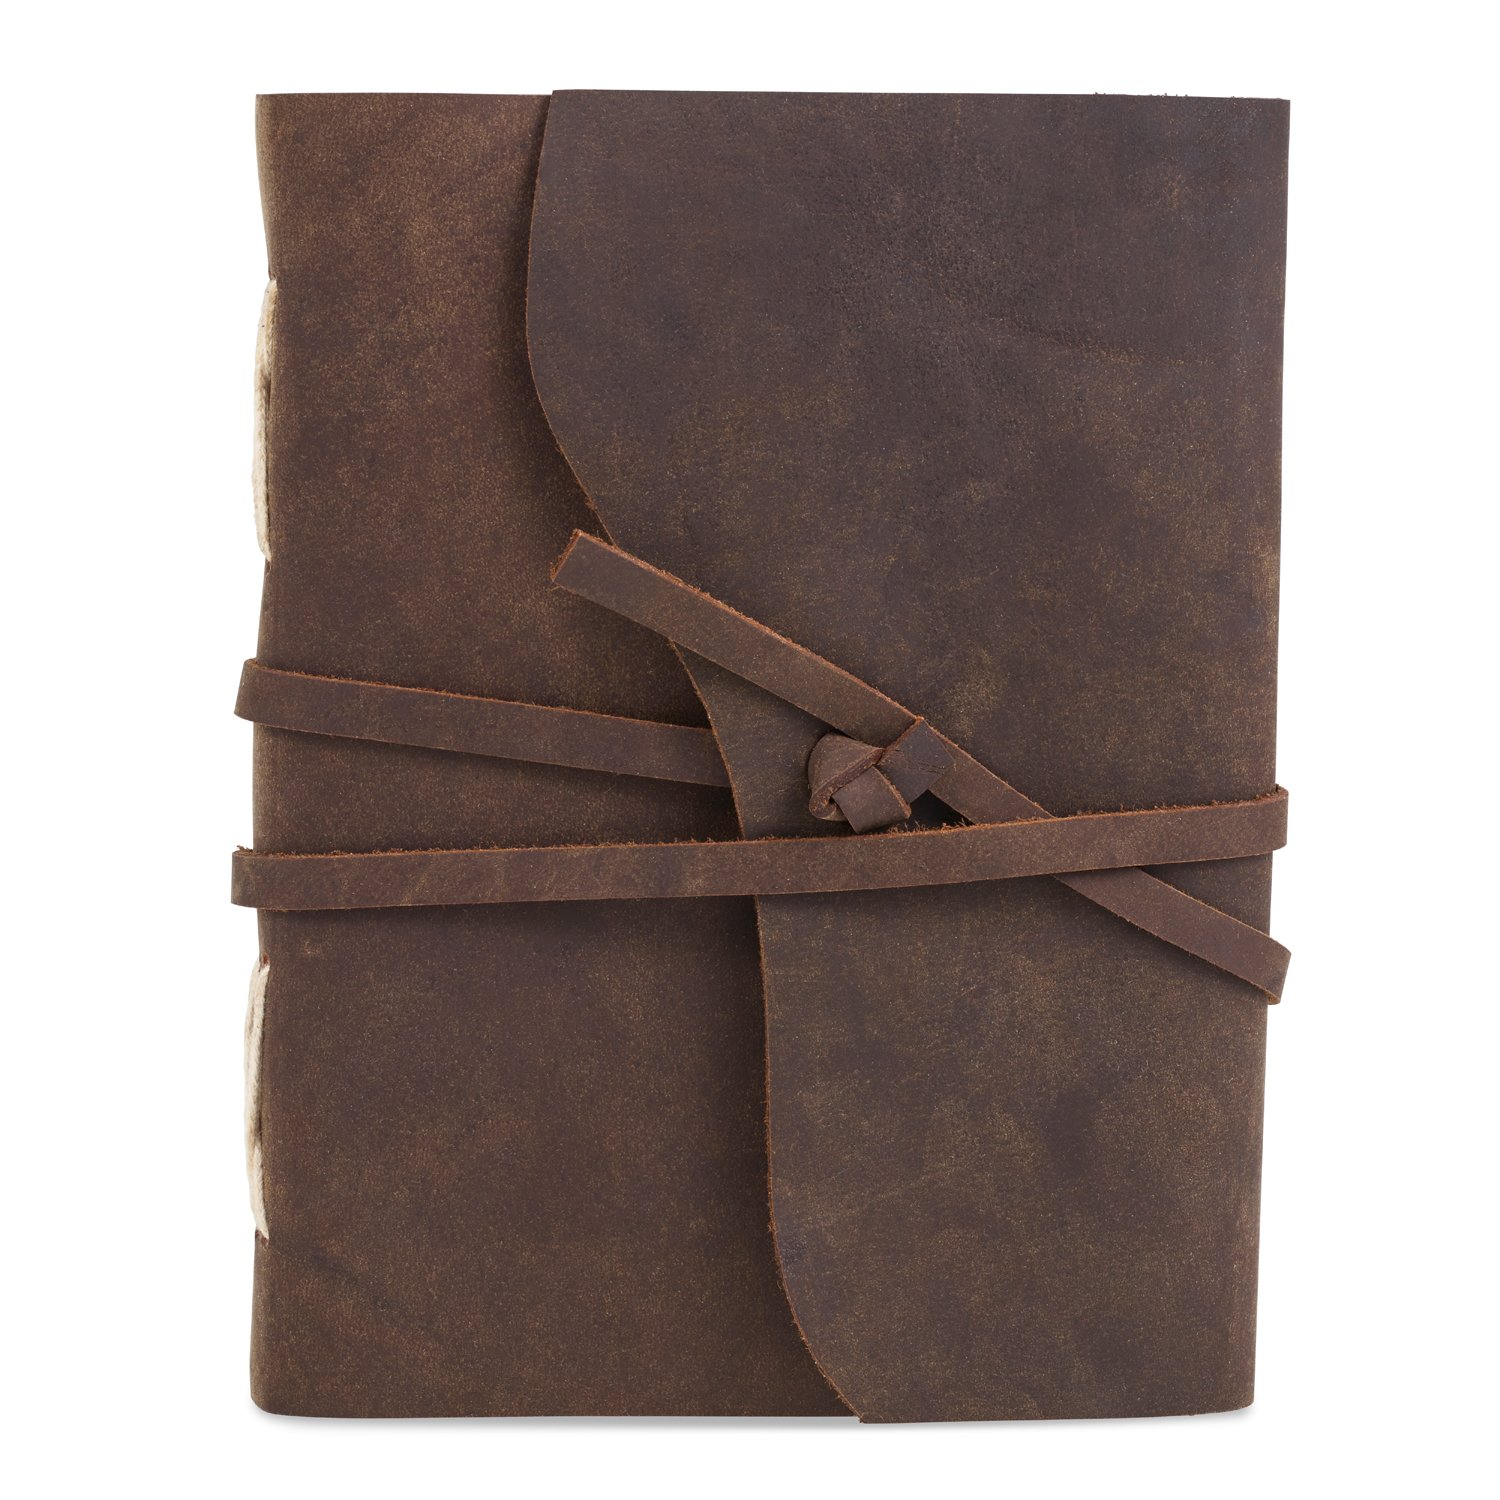 Leather Bound Writing Journal with Handmade Paper (6 x 8, DARK BROWN)